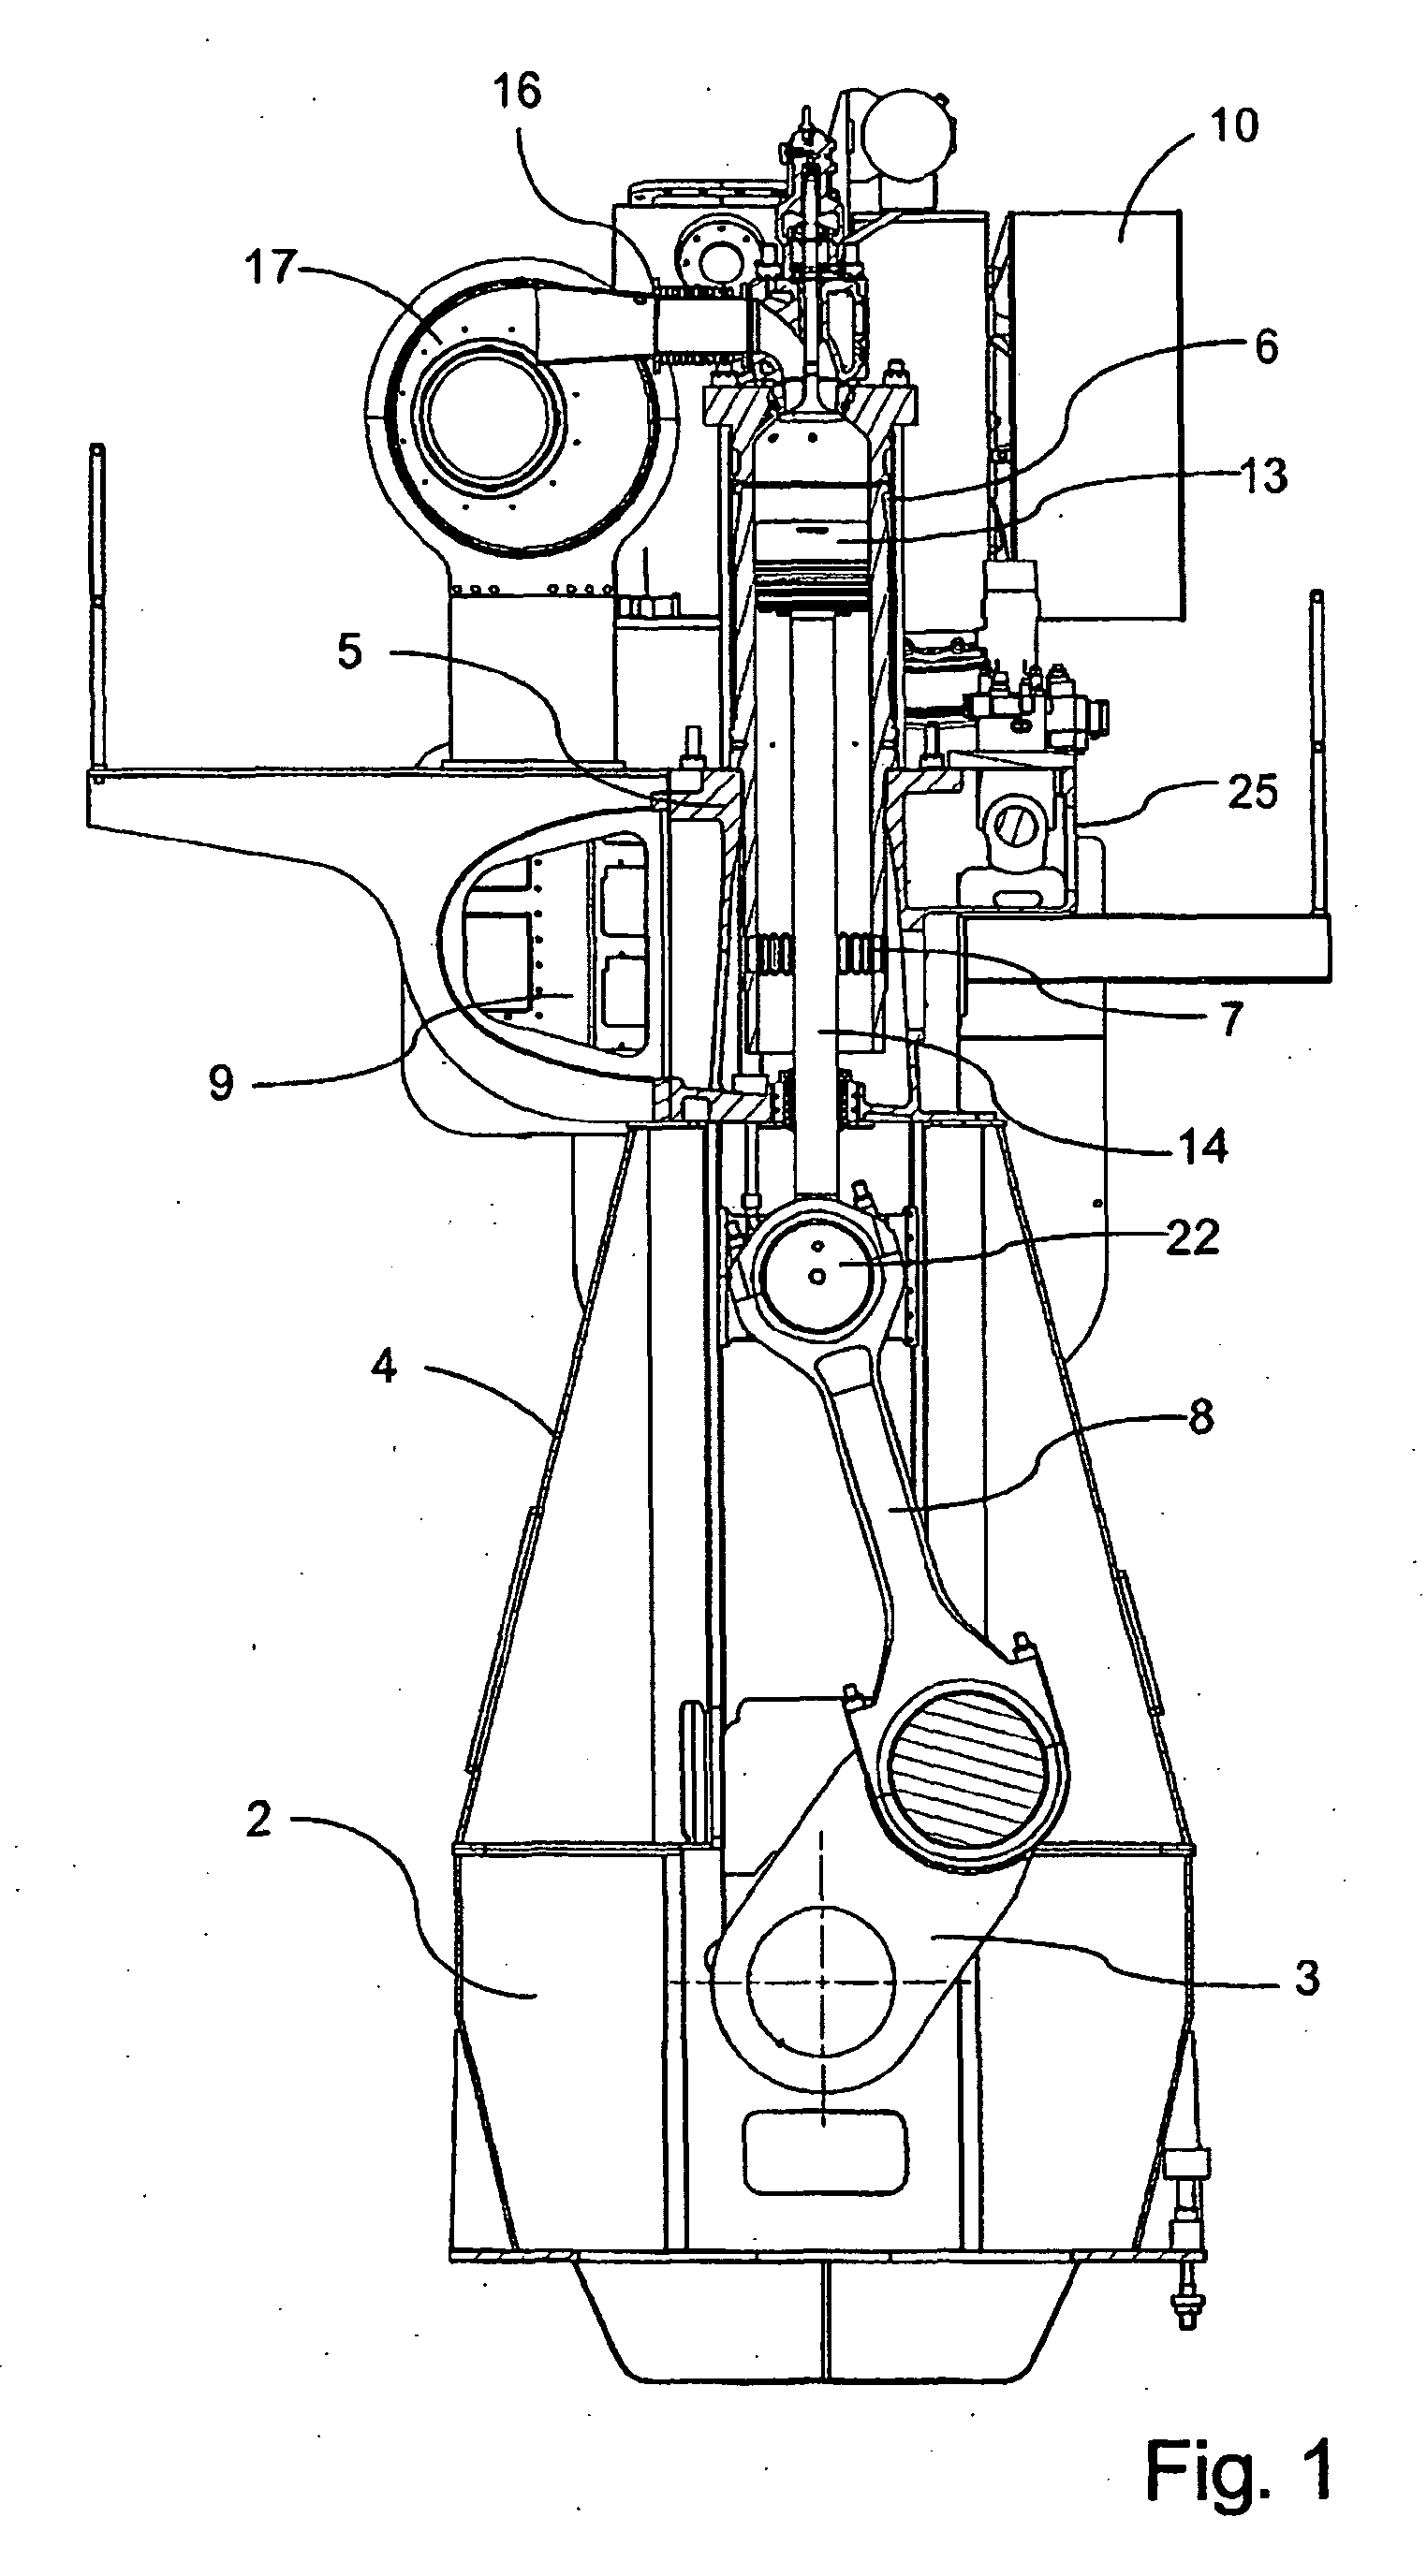 patent ep2071177b1 - large uniflow two-stroke diesel engine of the crosshead type